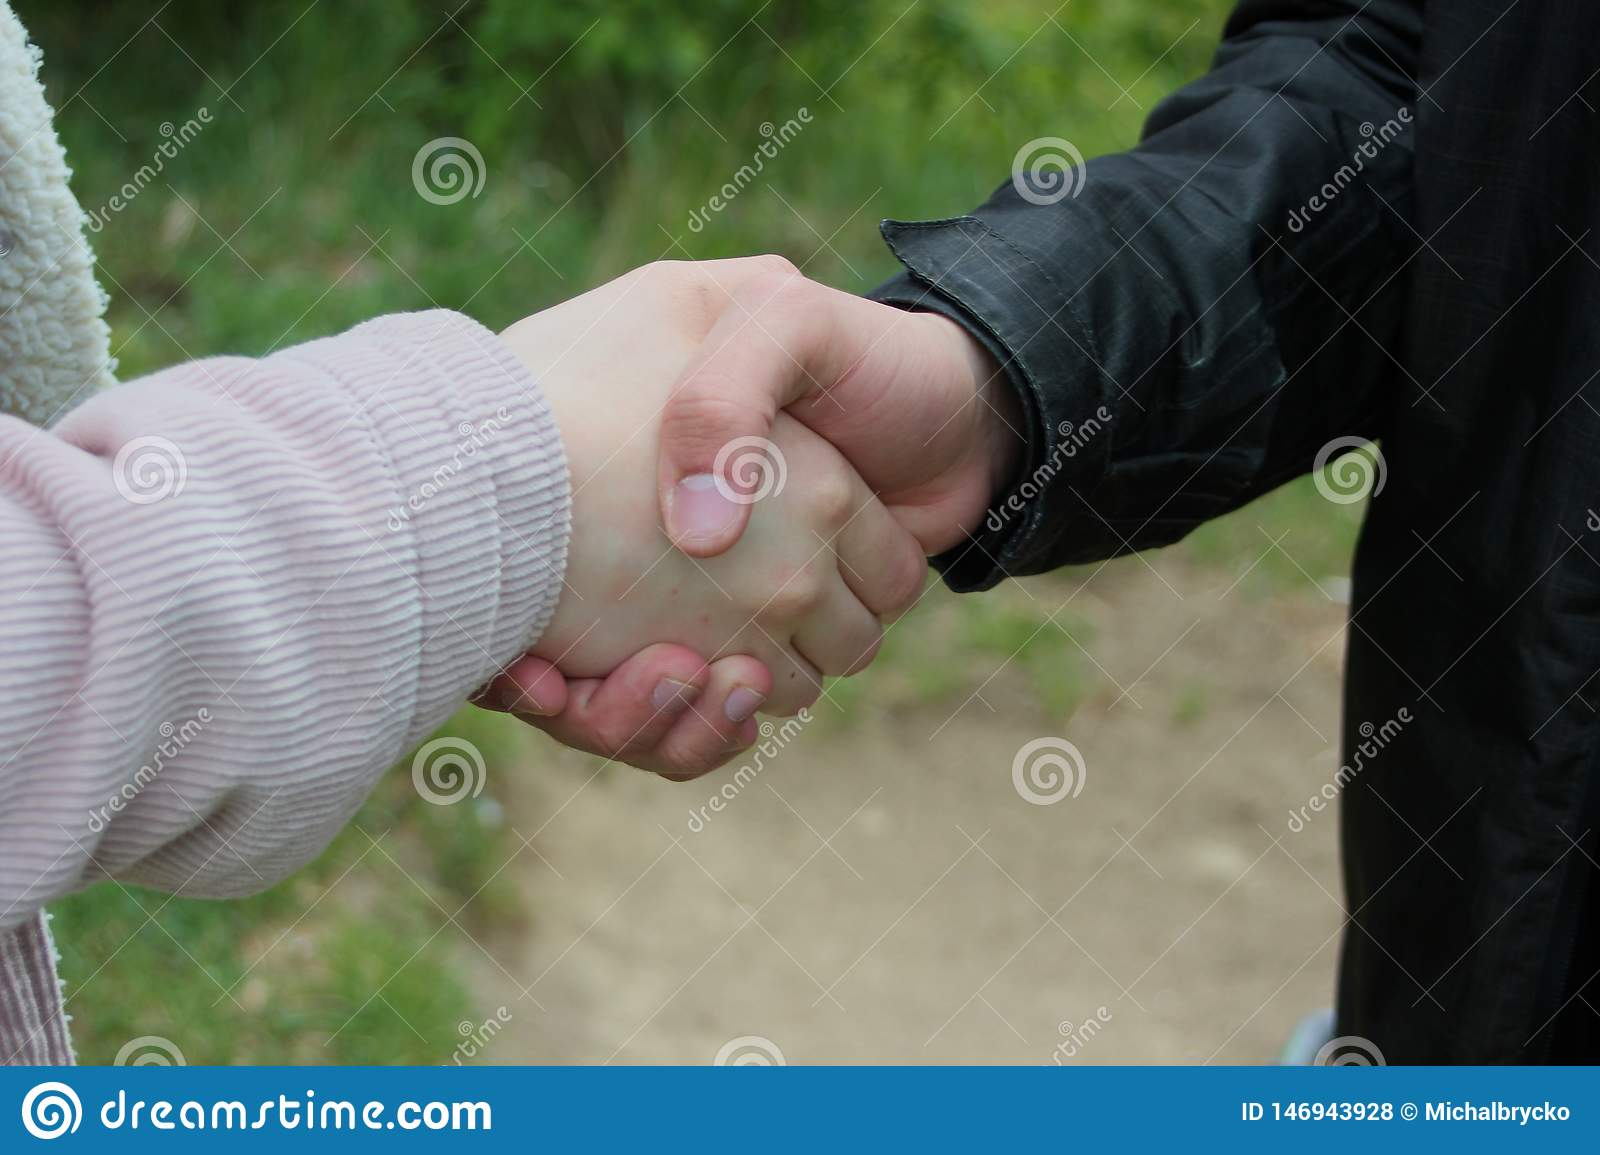 Closeup of a business handshake, in the forest